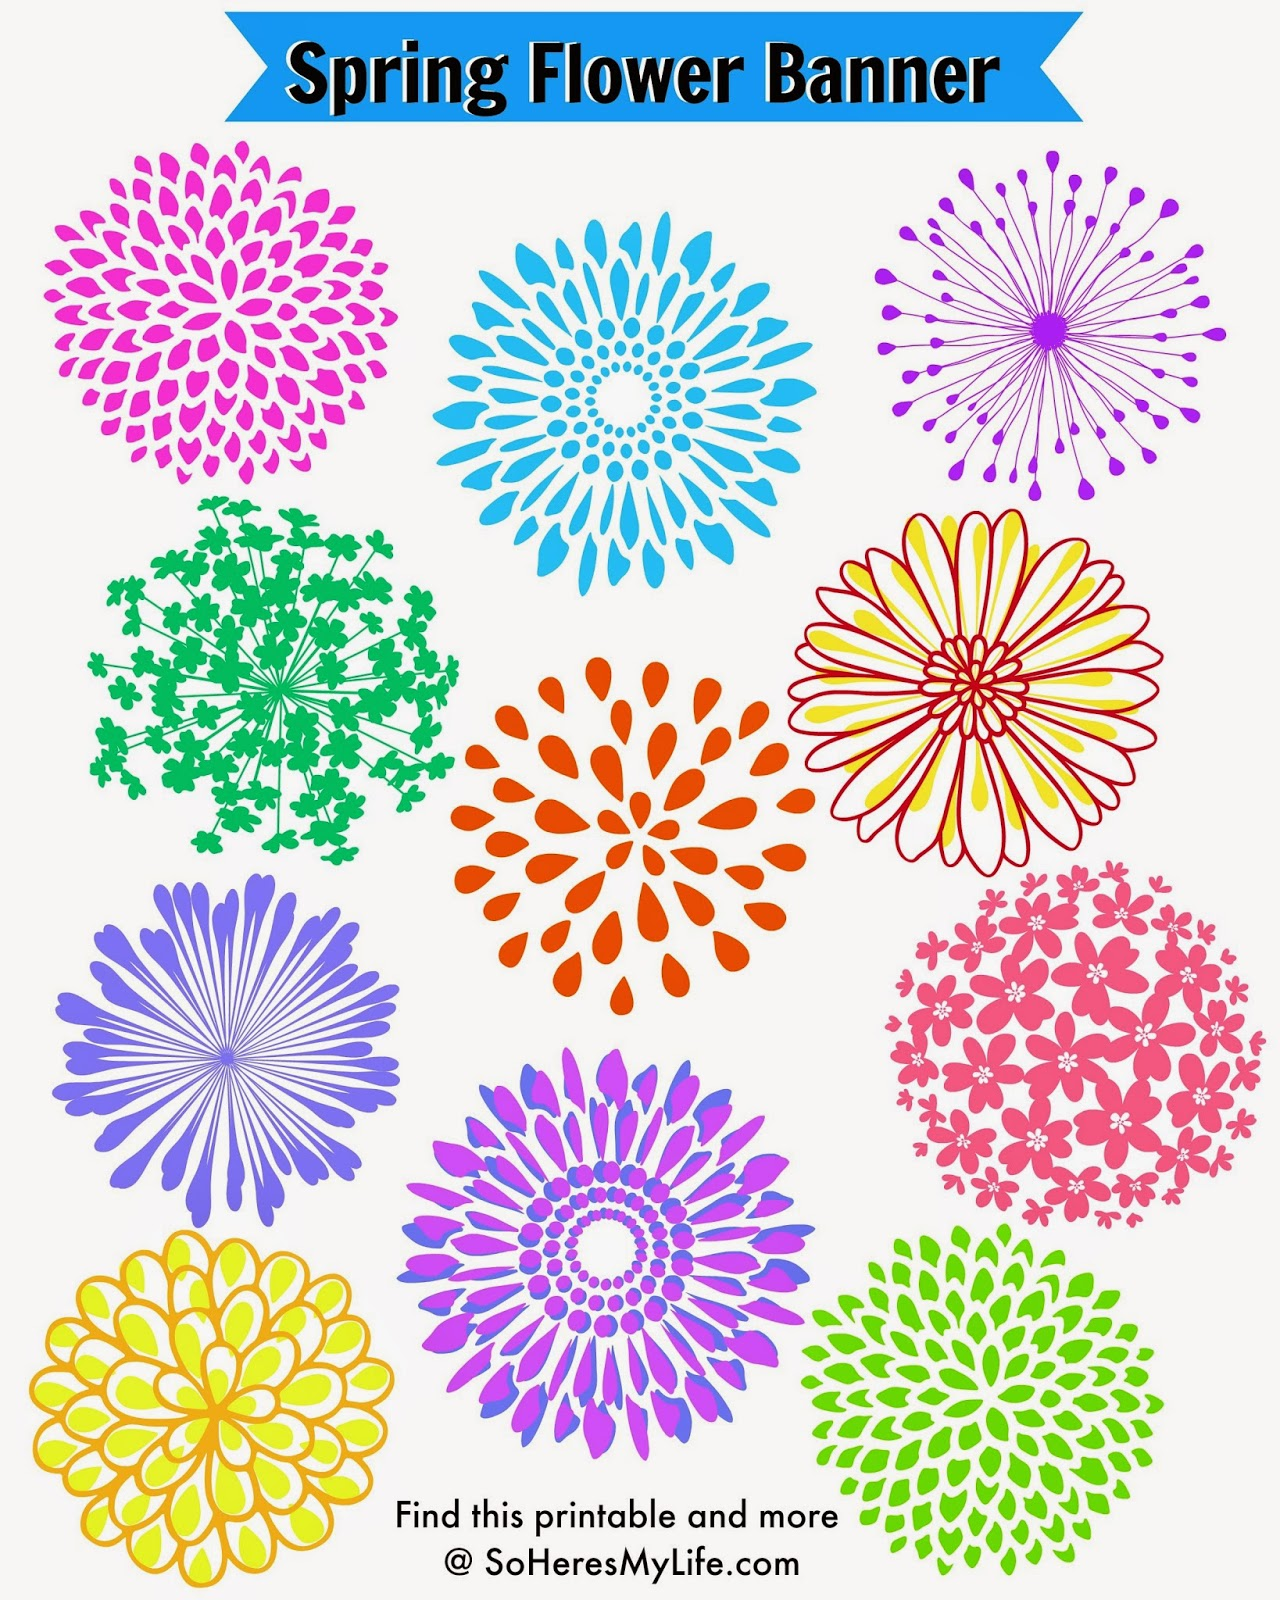 Decorate for Spring with this Free Spring Flower Printable from SoHeresMyLife.com